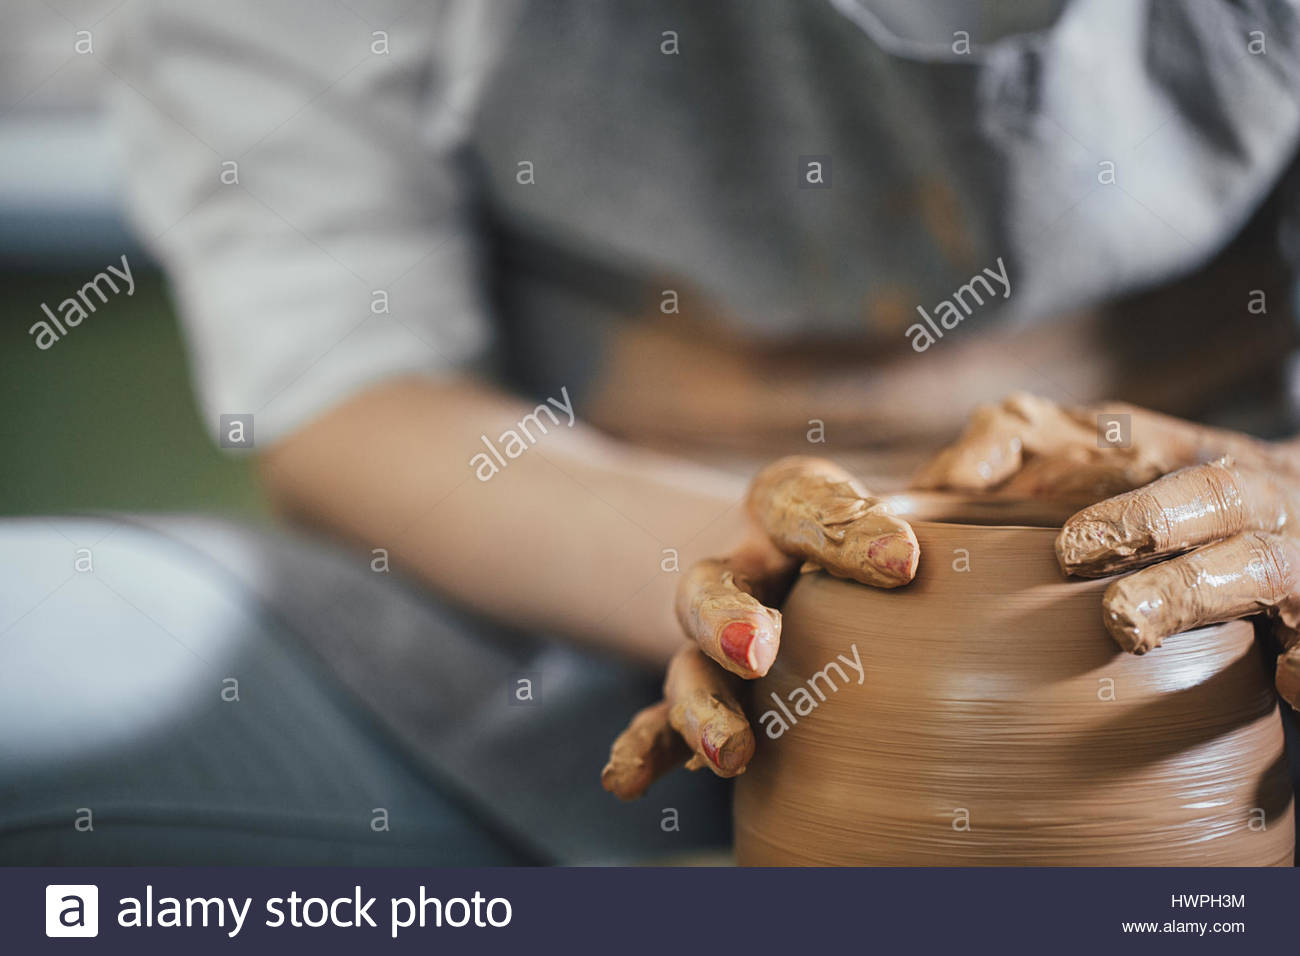 Midsection of woman shaping clay on spinning wheel at workshop - Stock Image